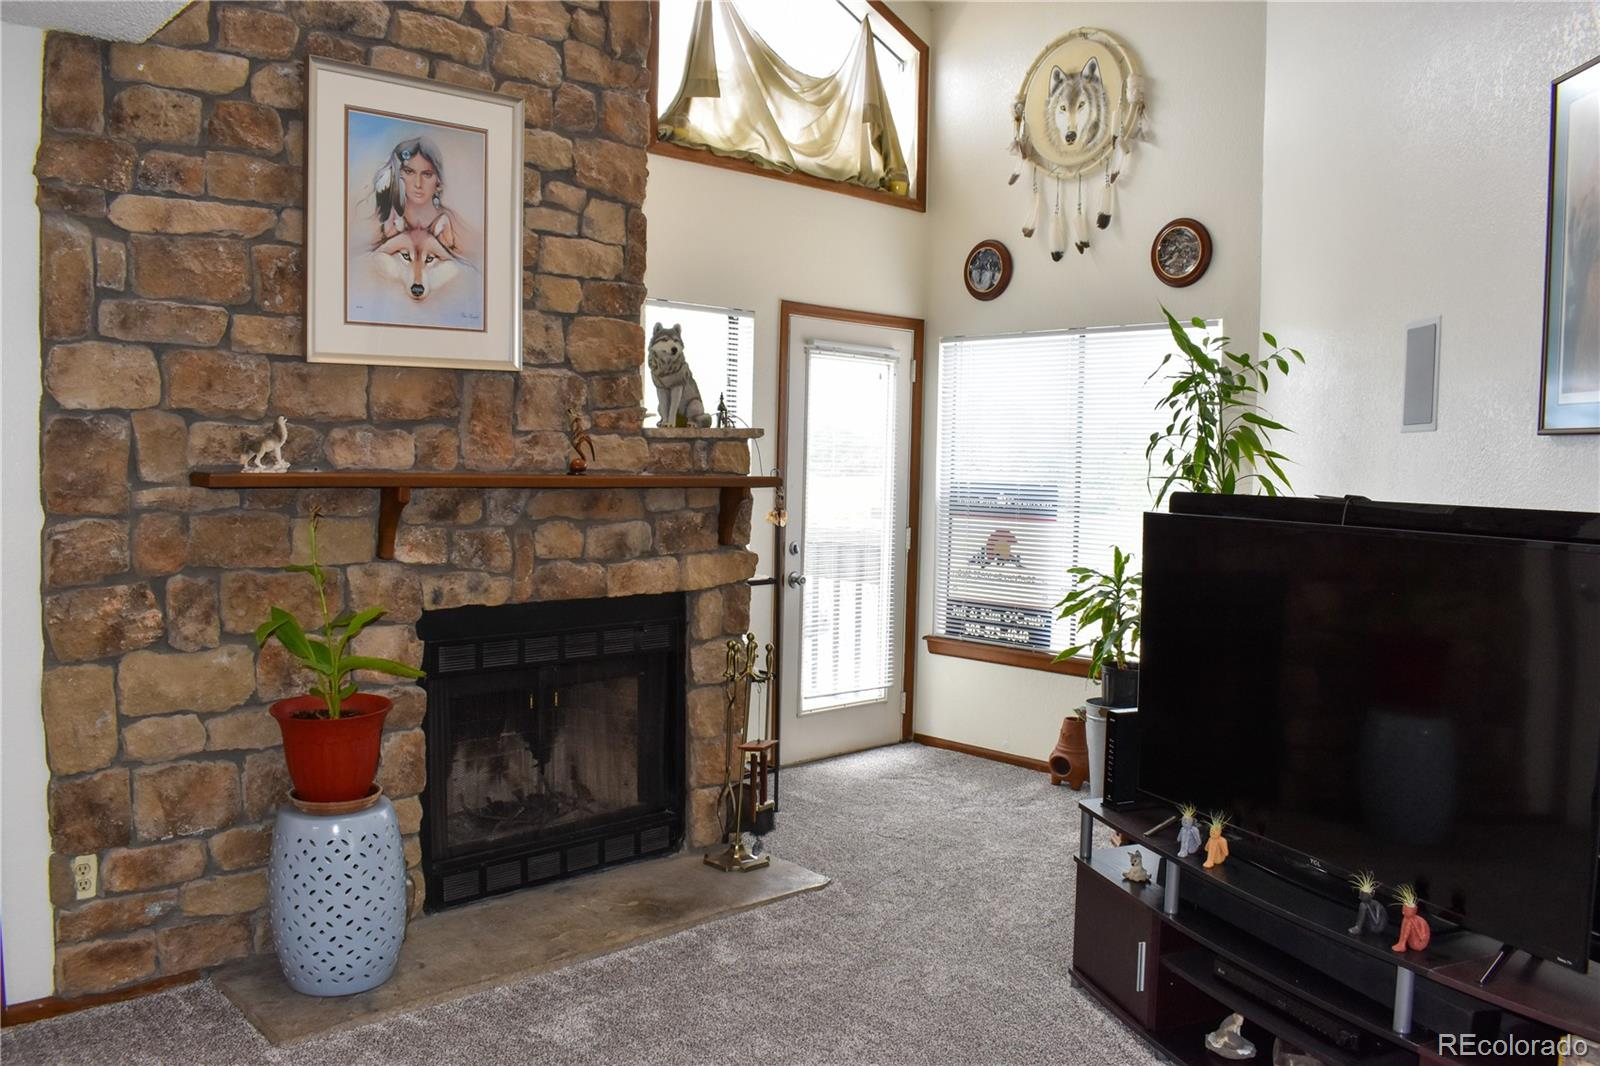 MLS# 4567870 - 5 - 5620 W 80th Place #66, Arvada, CO 80003